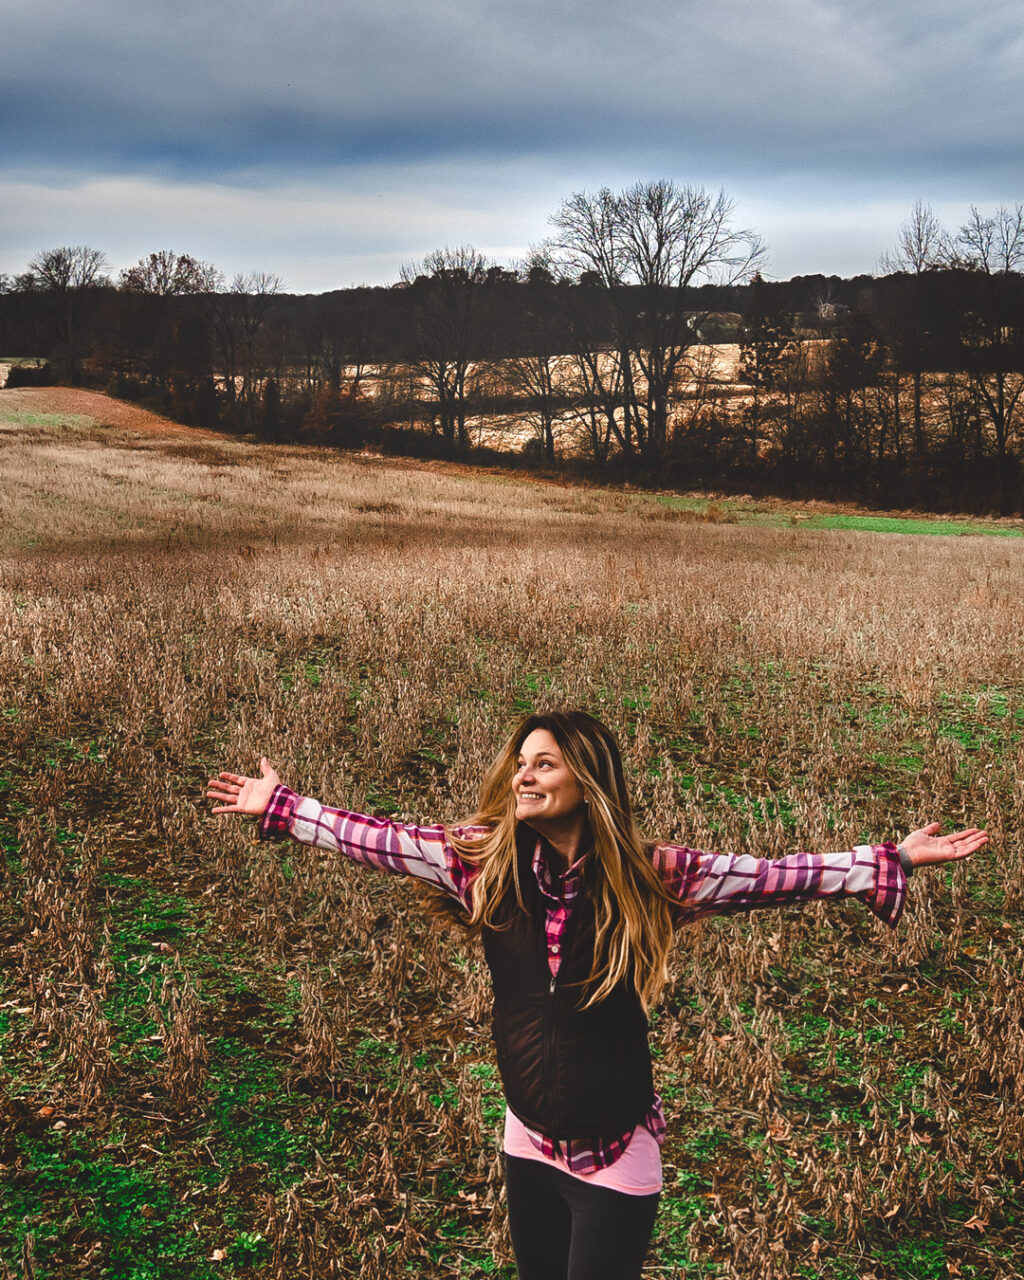 Woman hiker spinning with arms outstretched in a soybean field.